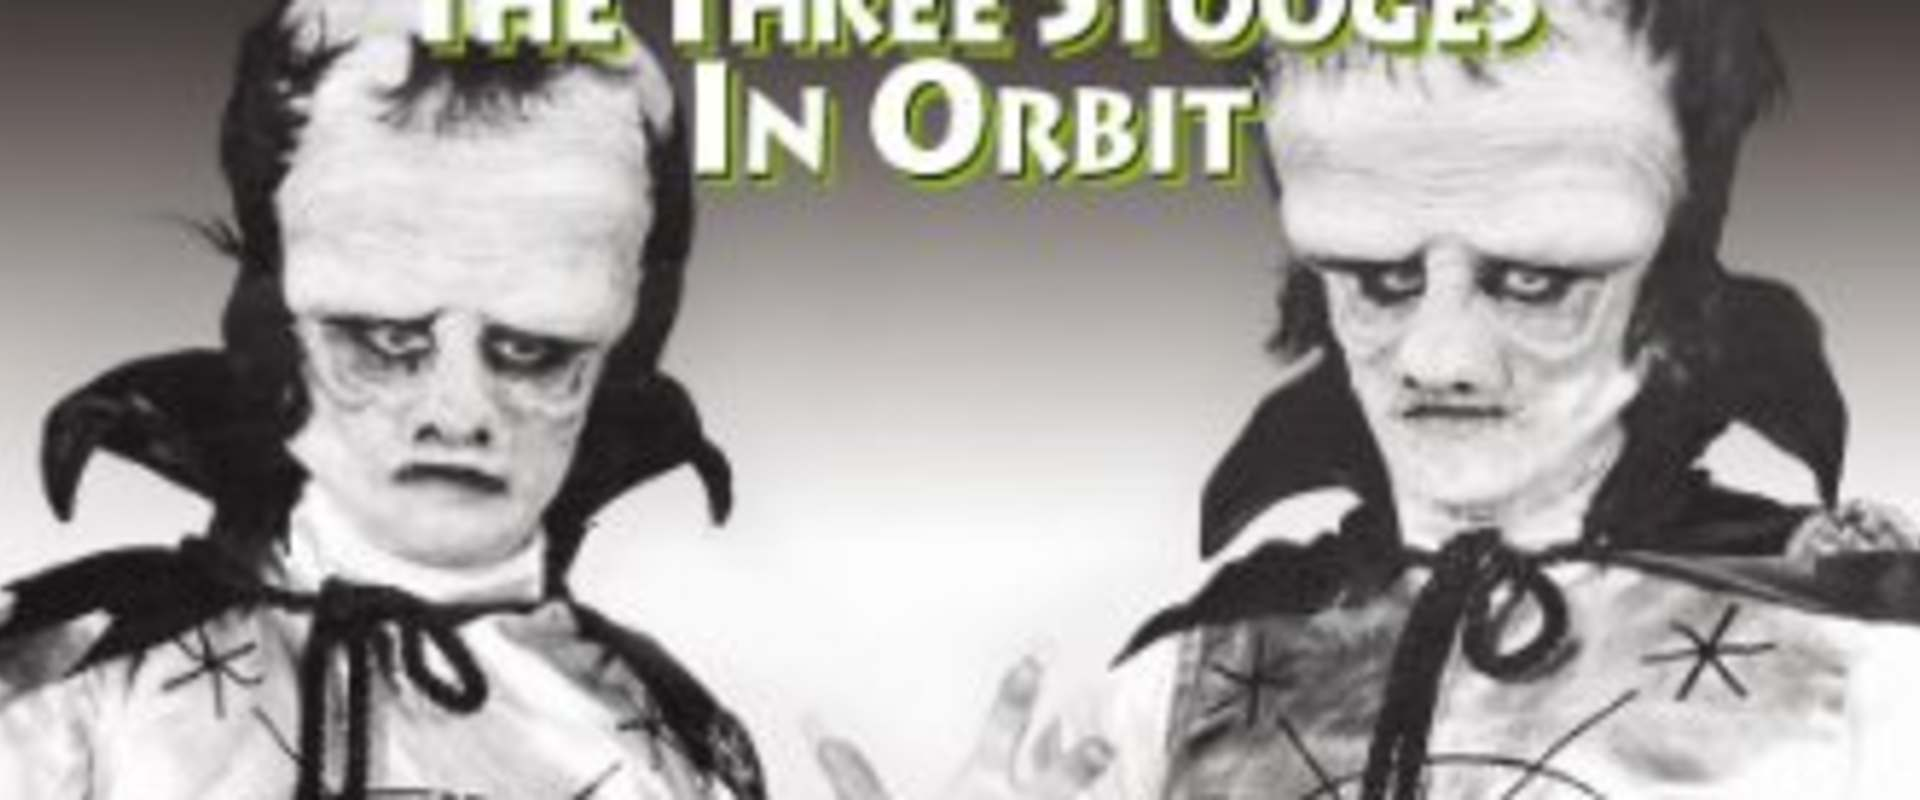 The Three Stooges in Orbit background 1